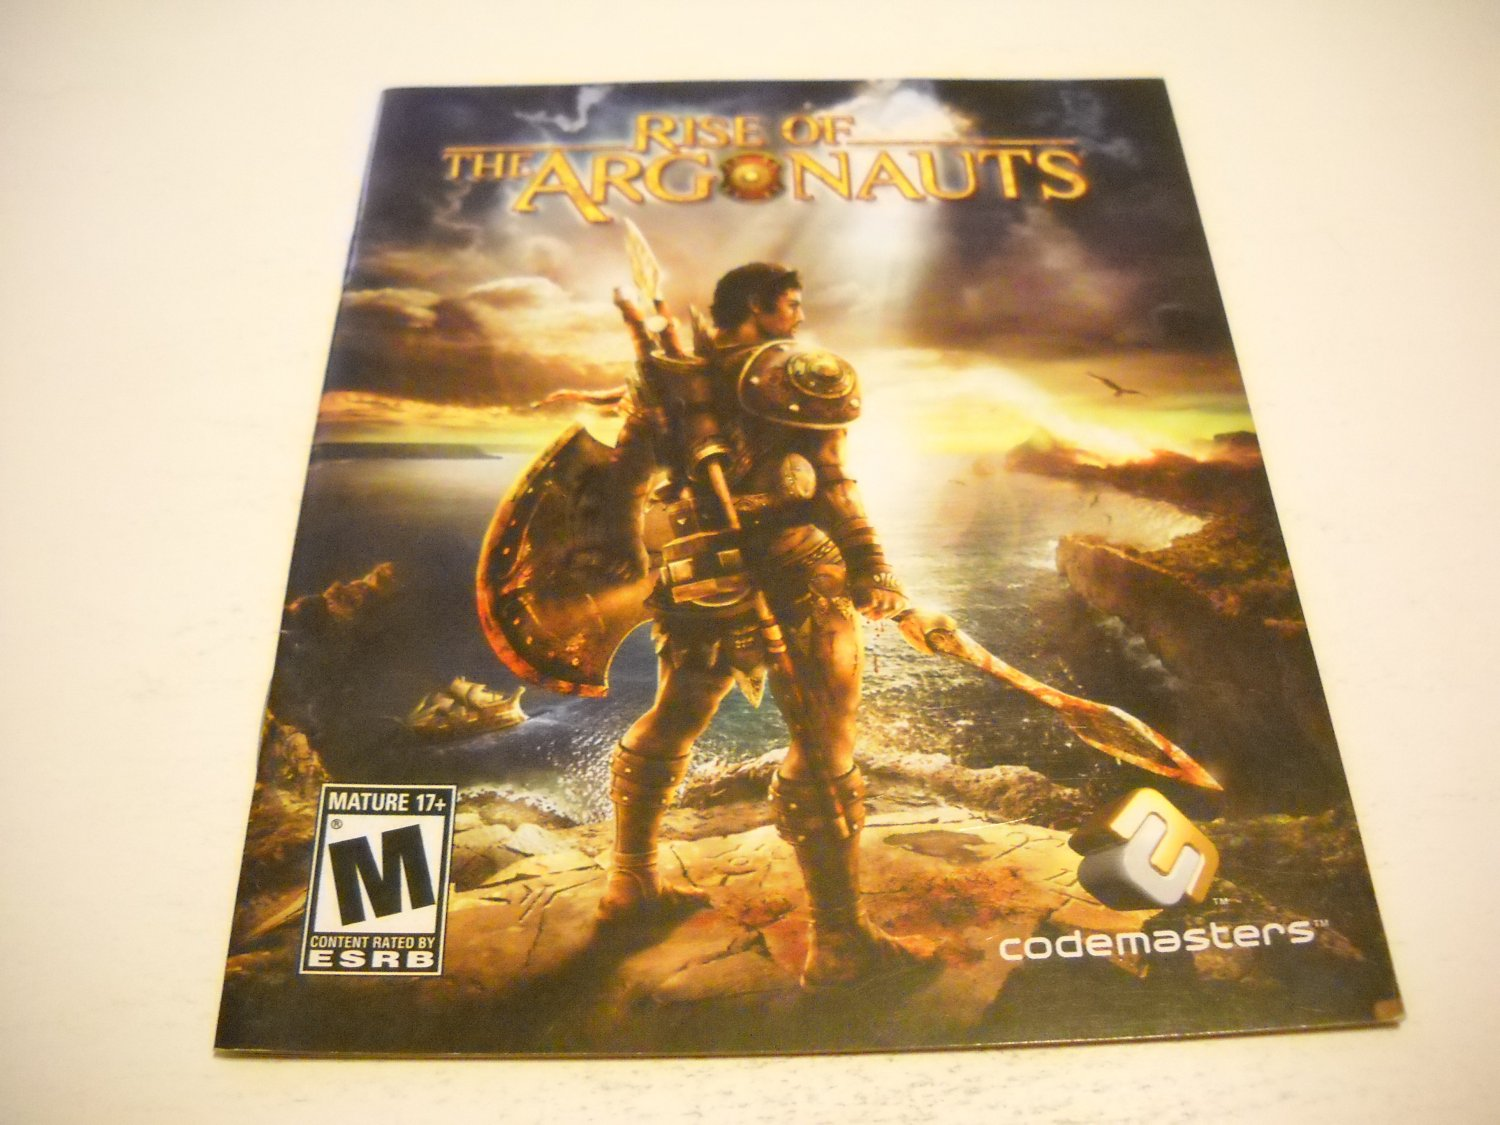 Manual ONLY ~  for Rise of the Argonauts , PS3